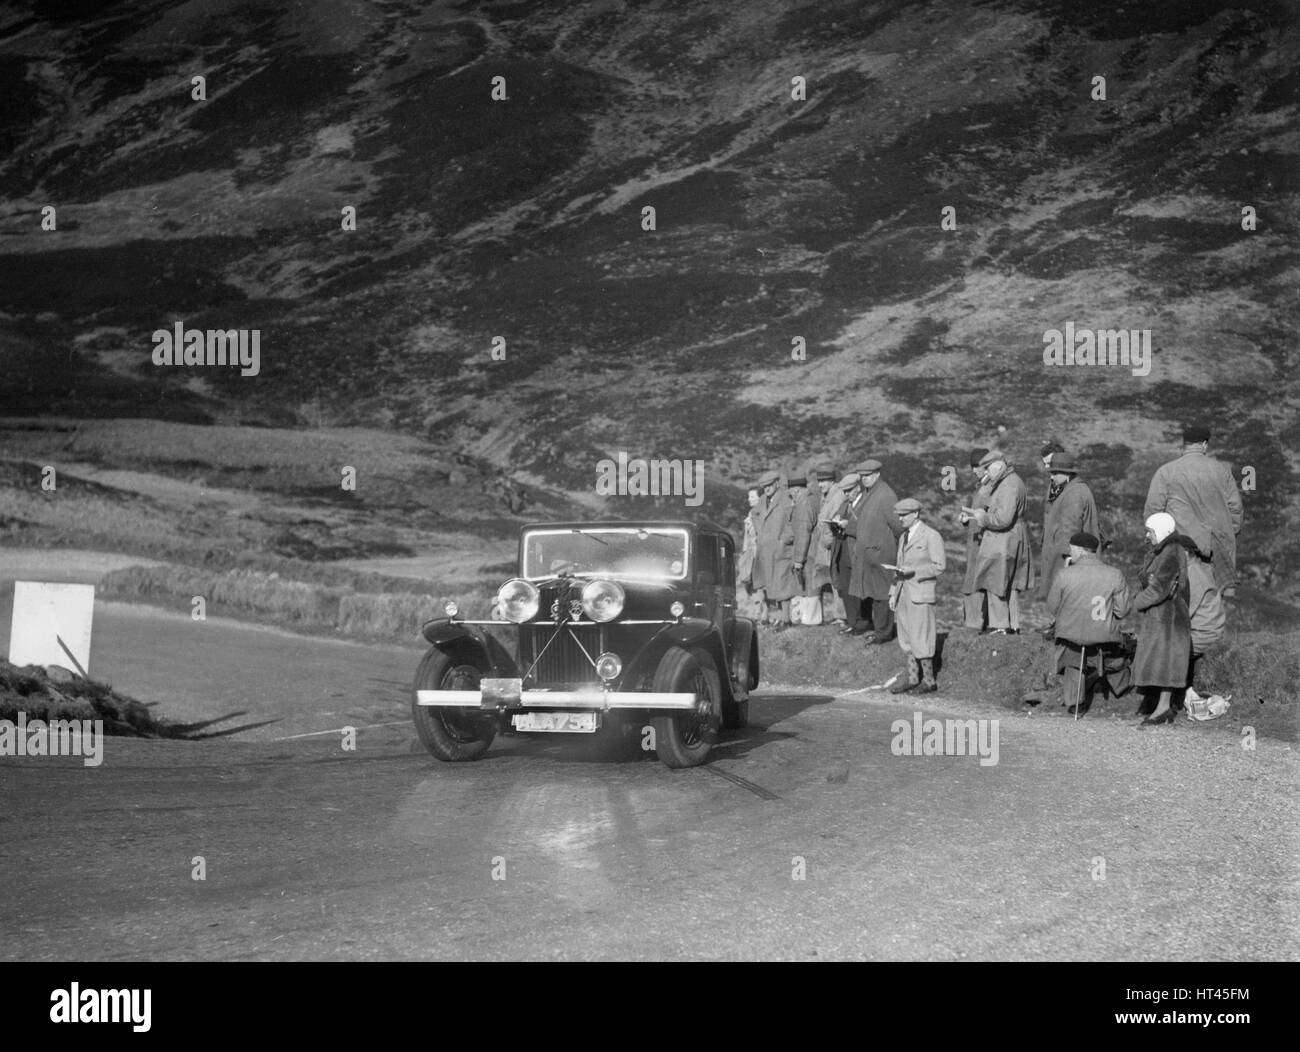 Talbot saloon competing in the RSAC Scottish Rally, Devil's Elbow, Glenshee, 1934. Artist: Bill Brunell. - Stock Image